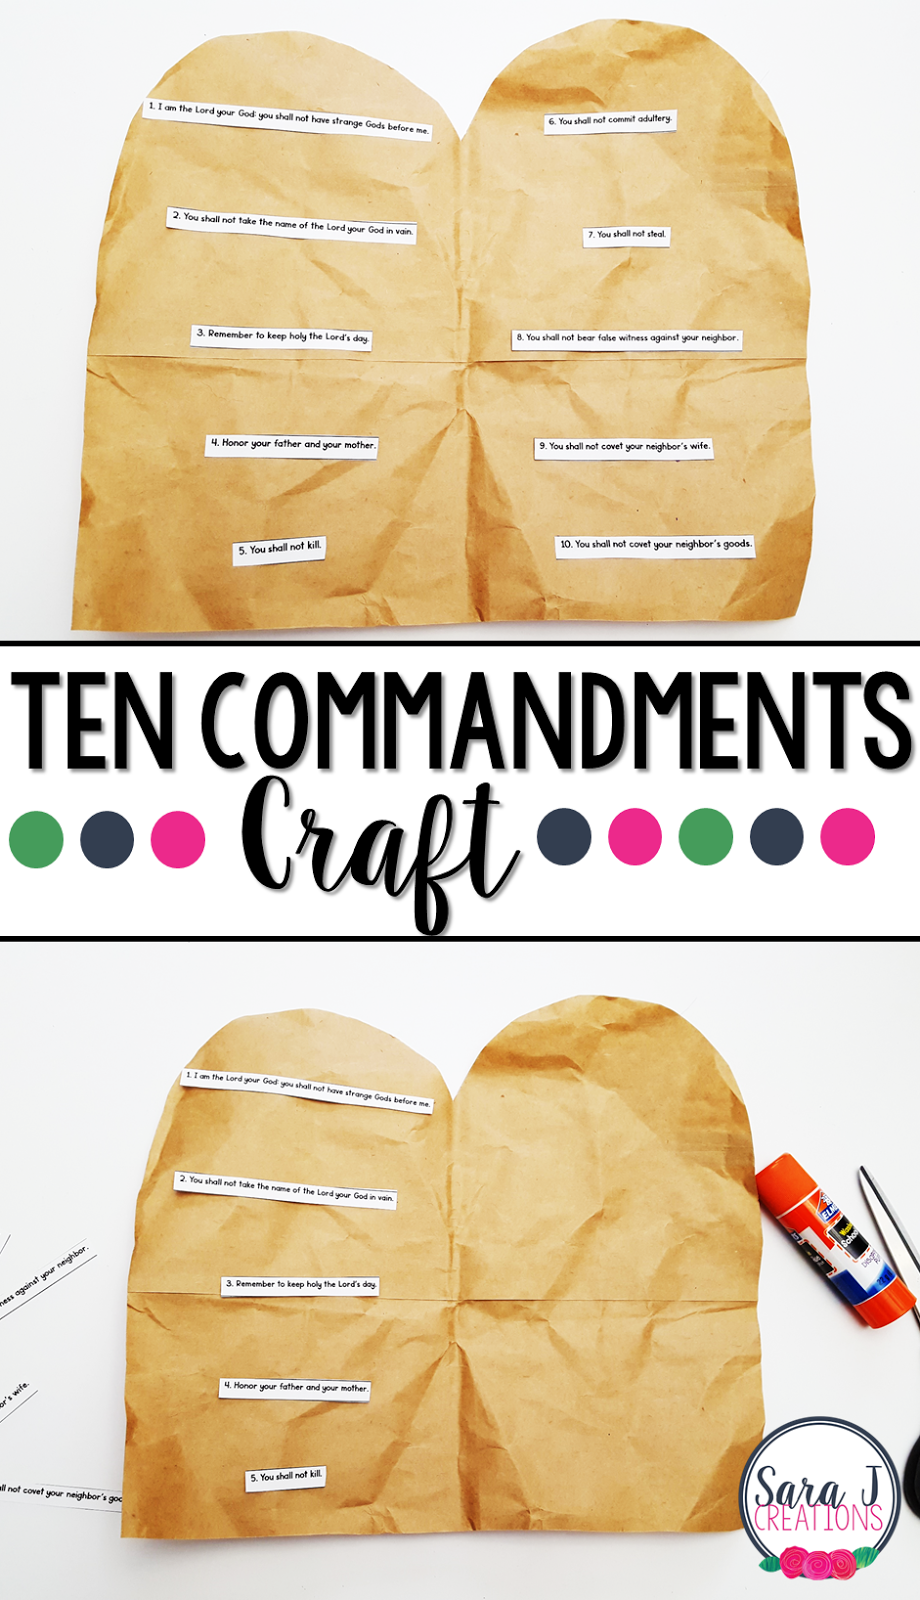 Ten Commandment Craft for kids using the Catholic translation